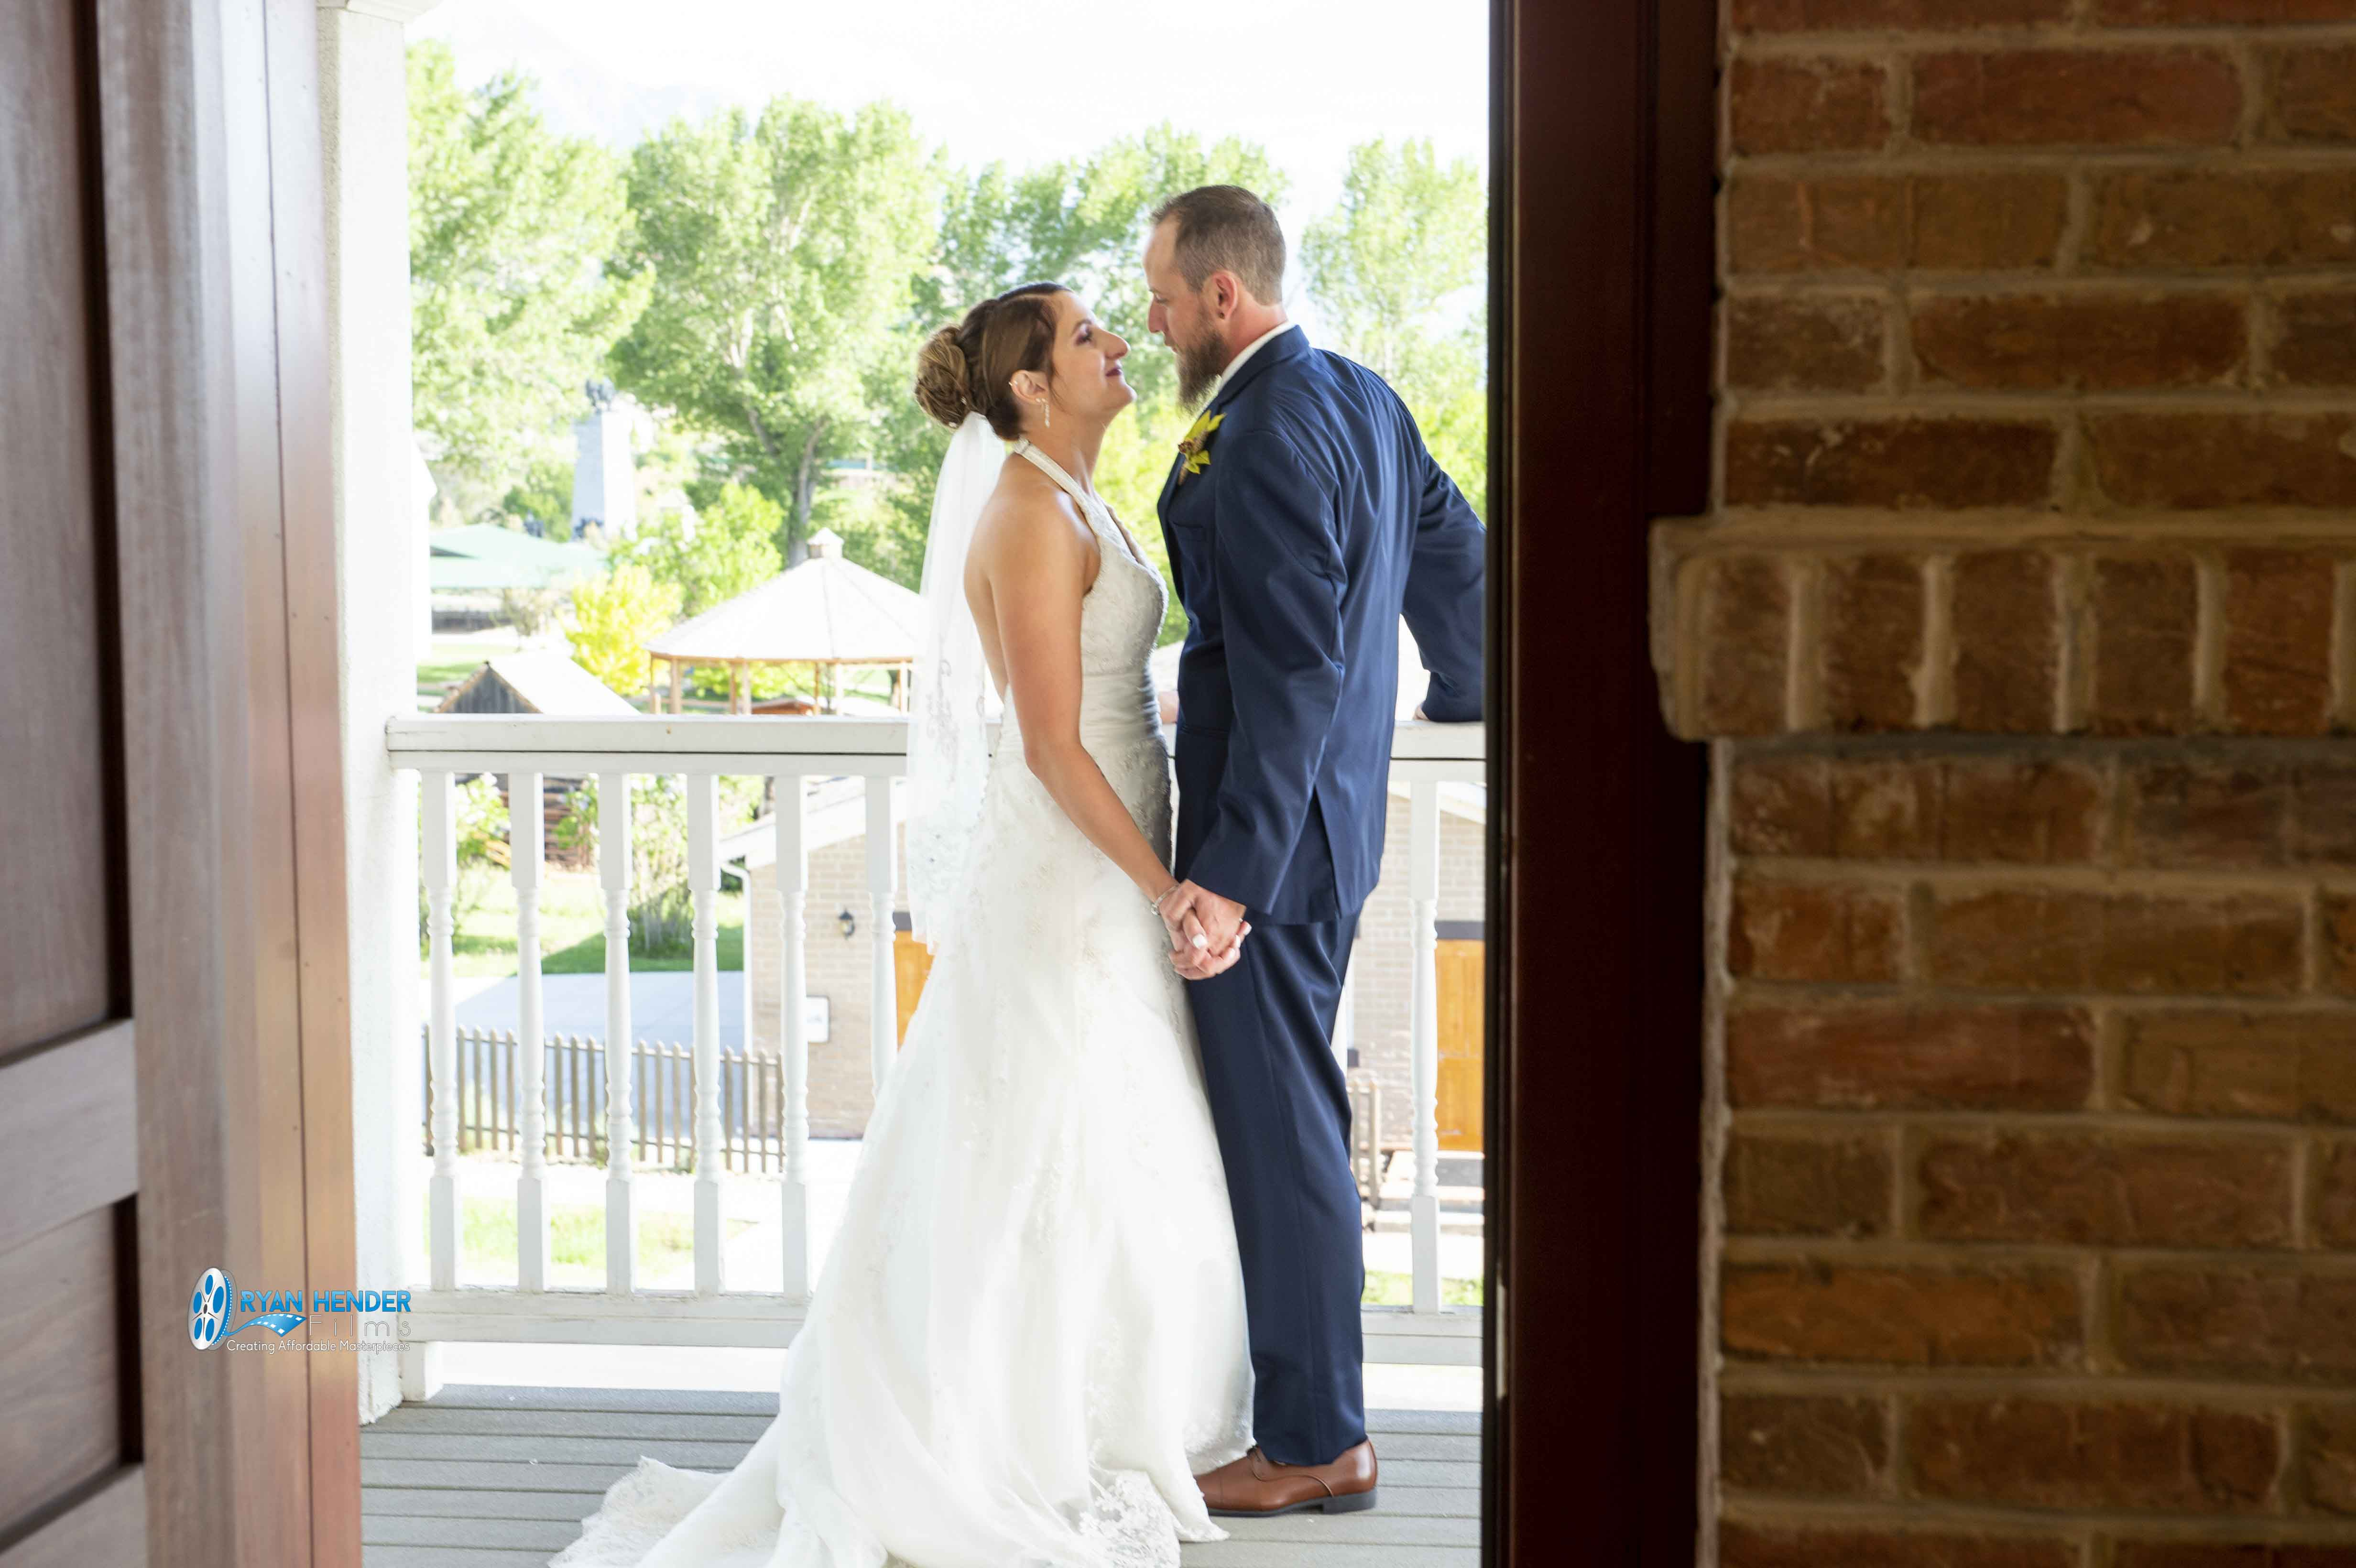 This Is The Place Heritage Park Wedding Photography   Sailor + Ned